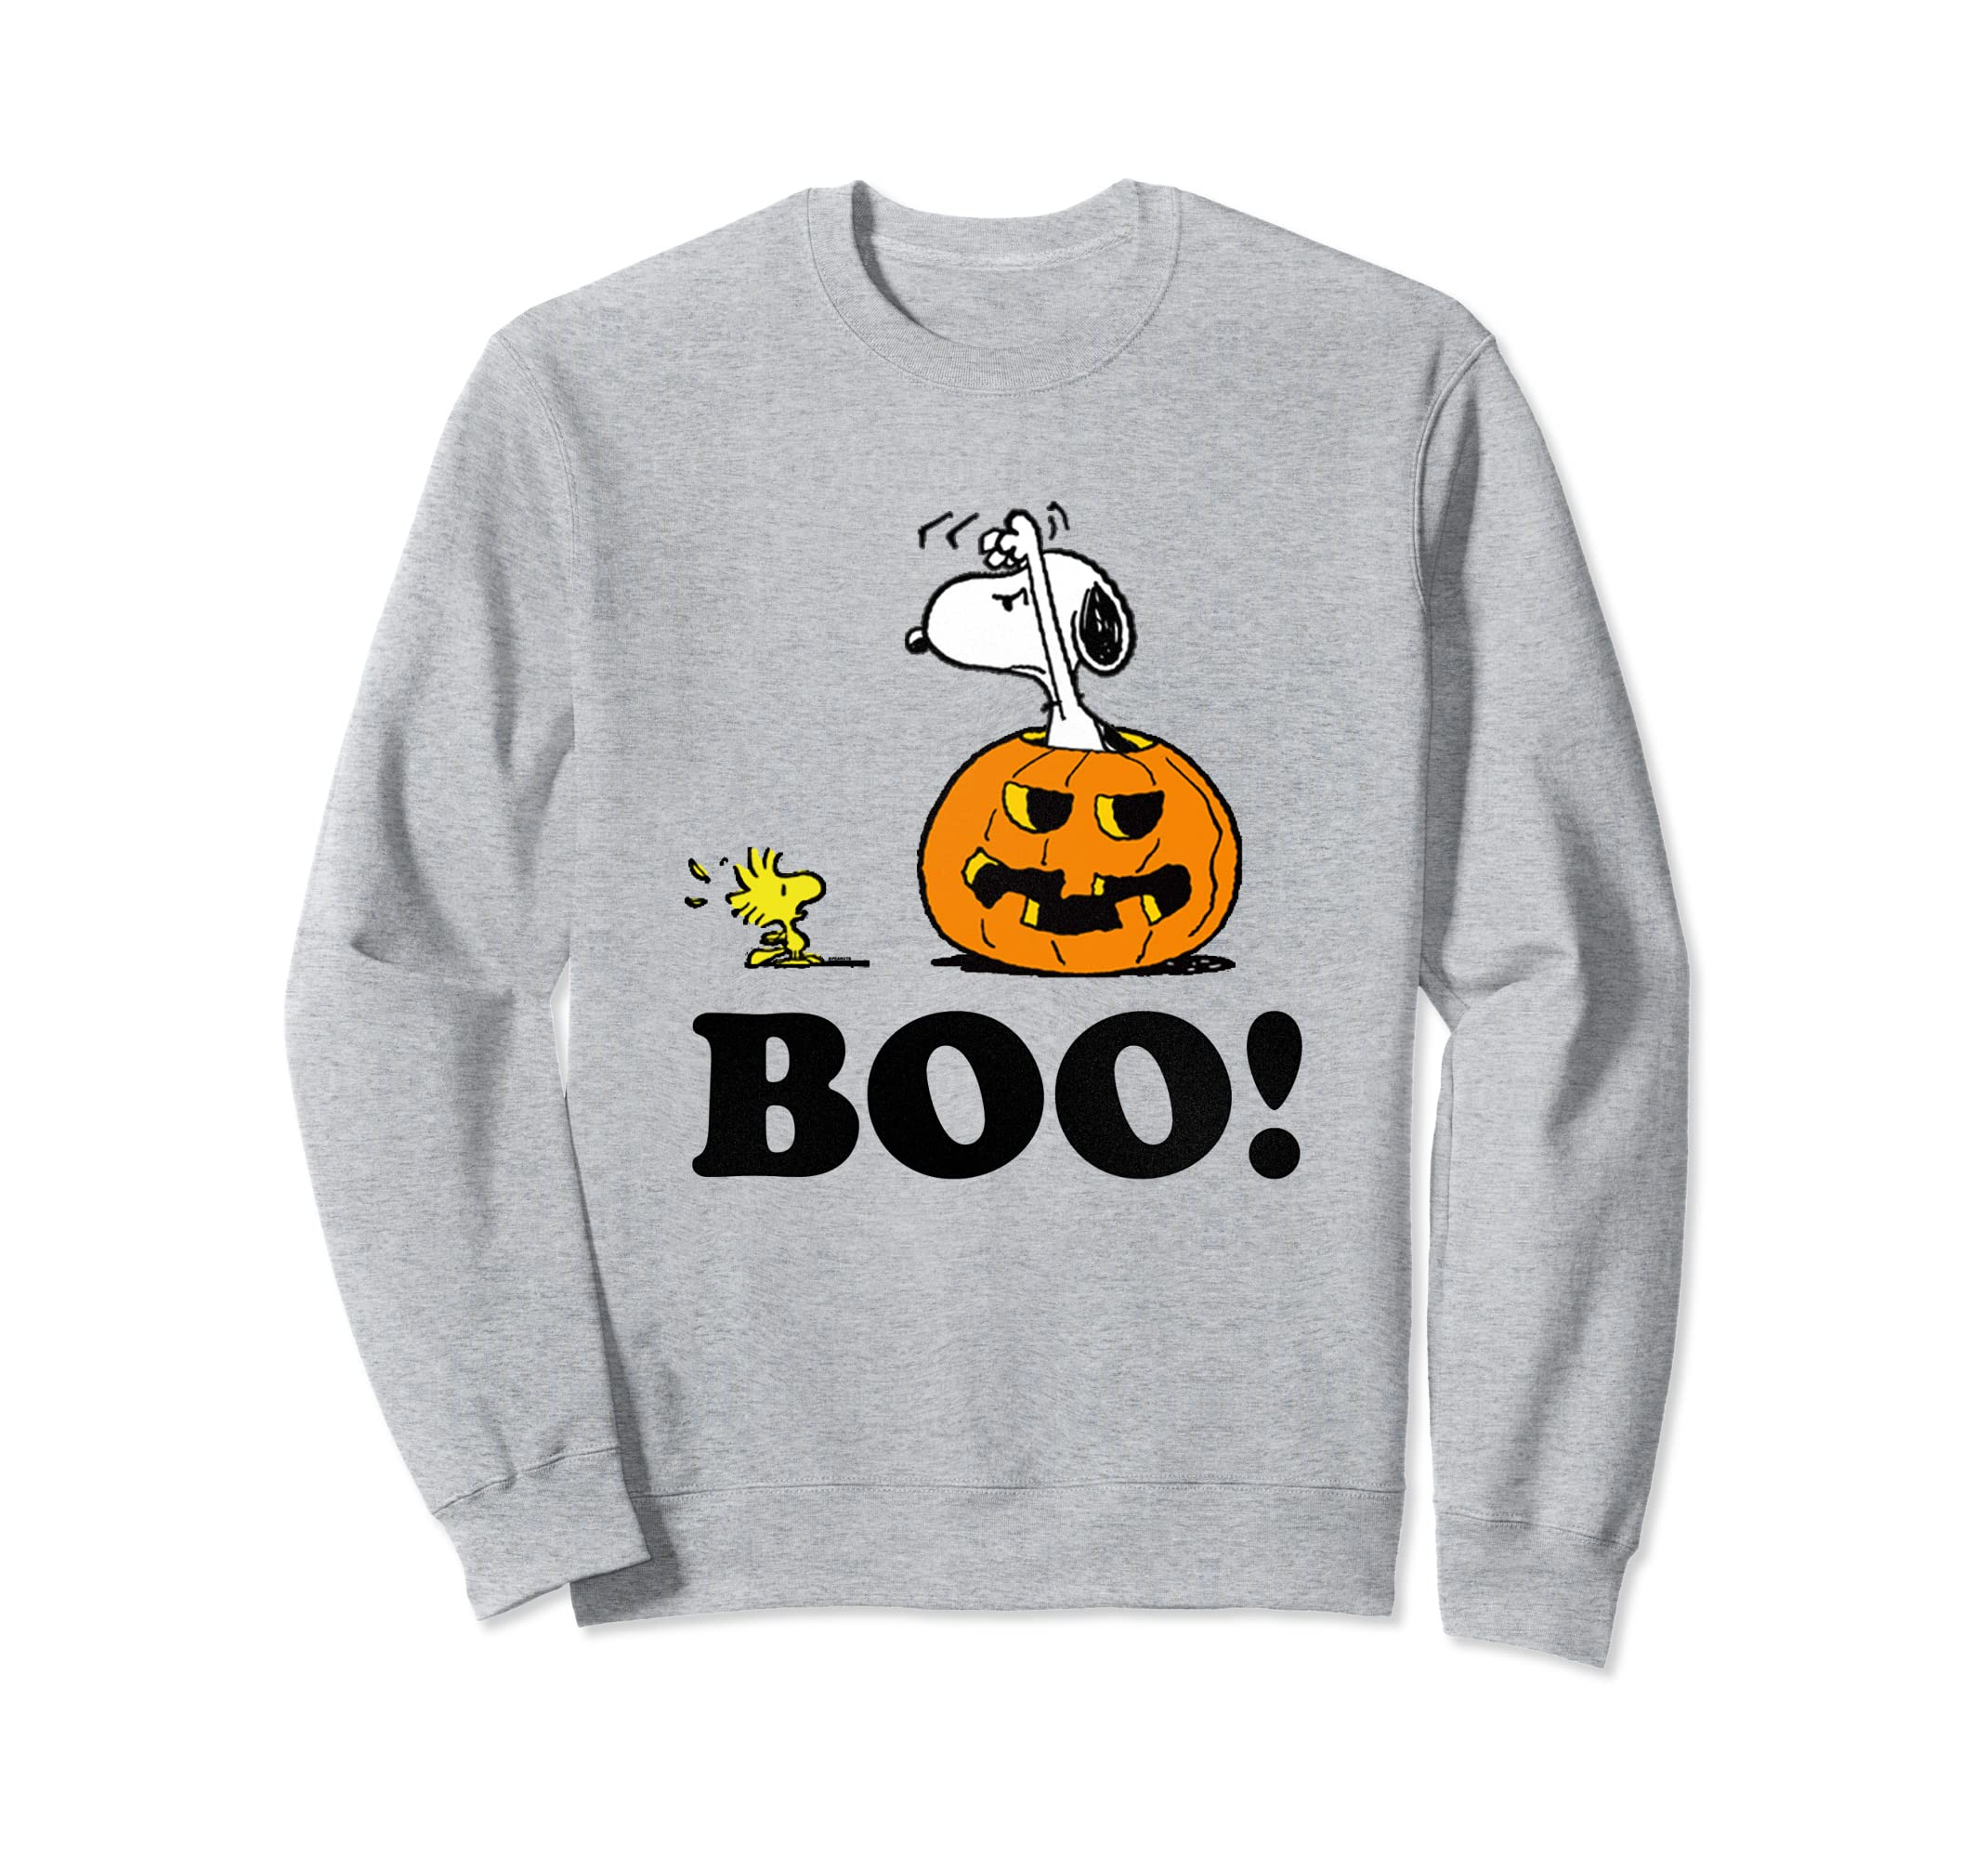 4c0813221 Amazon.com: Peanuts Halloween Snoopy Woodstock BOO! Pullover Sweatshirt:  Clothing